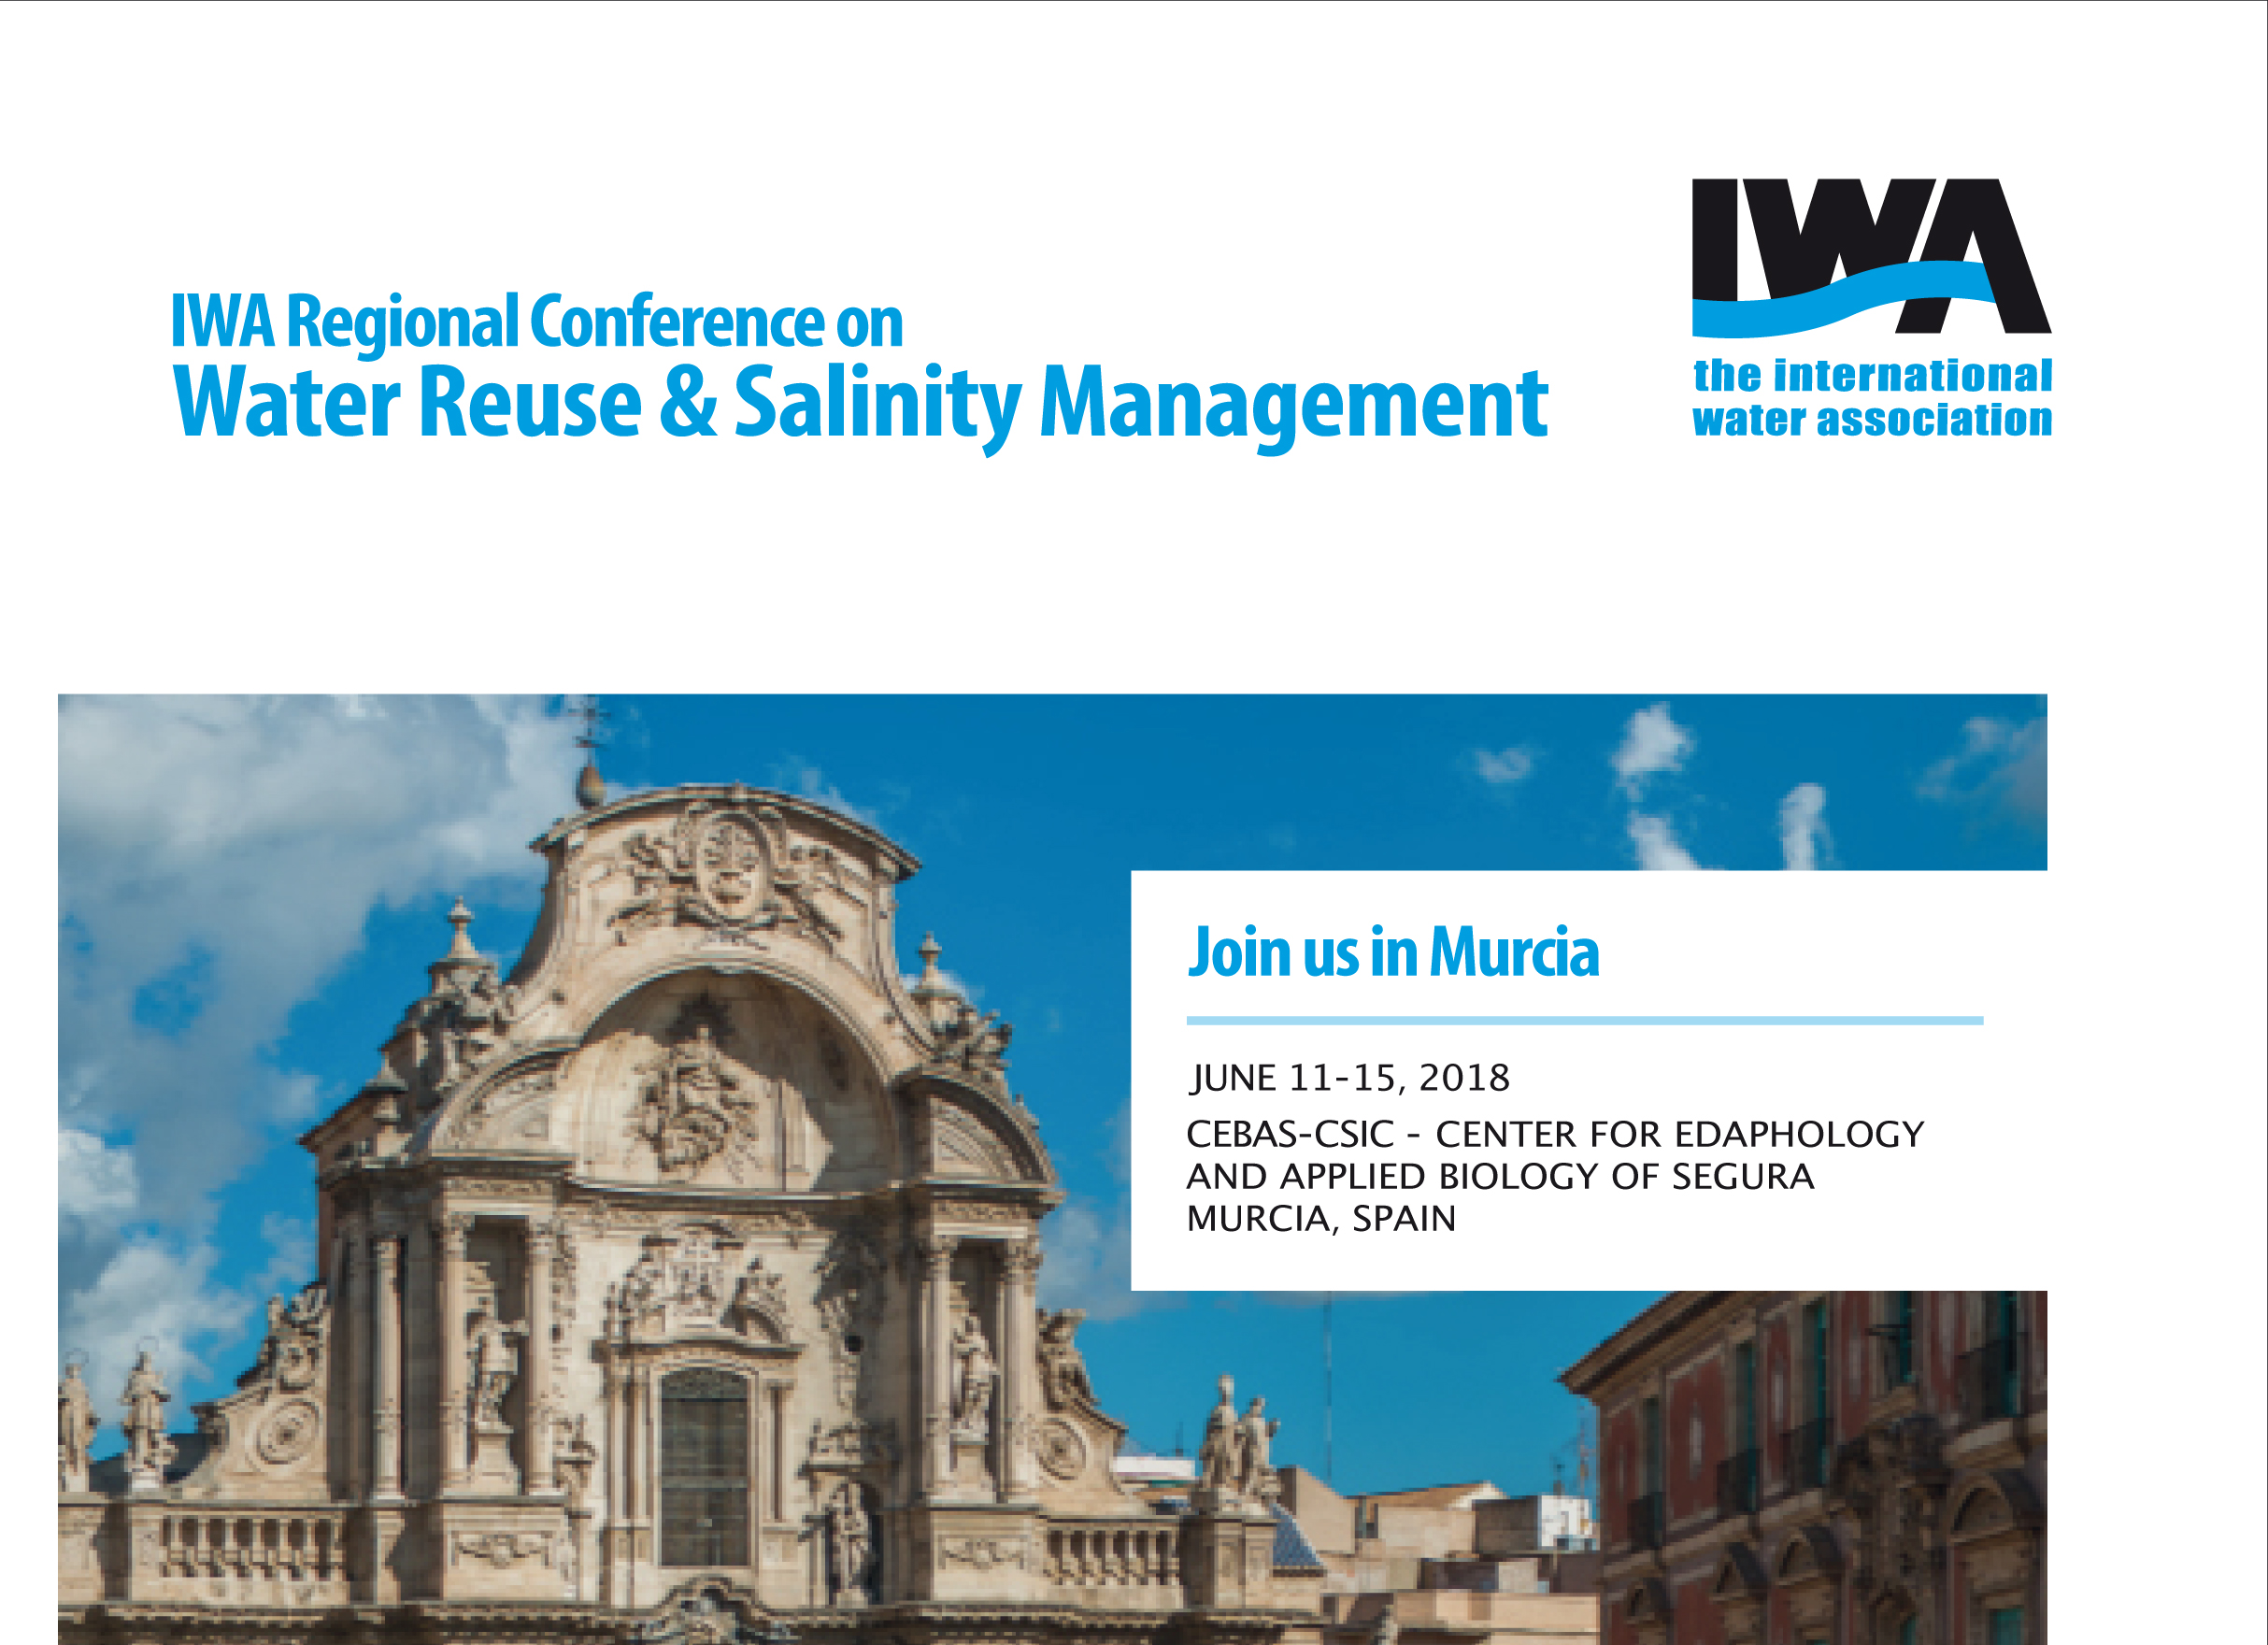 IWA Regional Conference on Water Reuse & Salinity Management